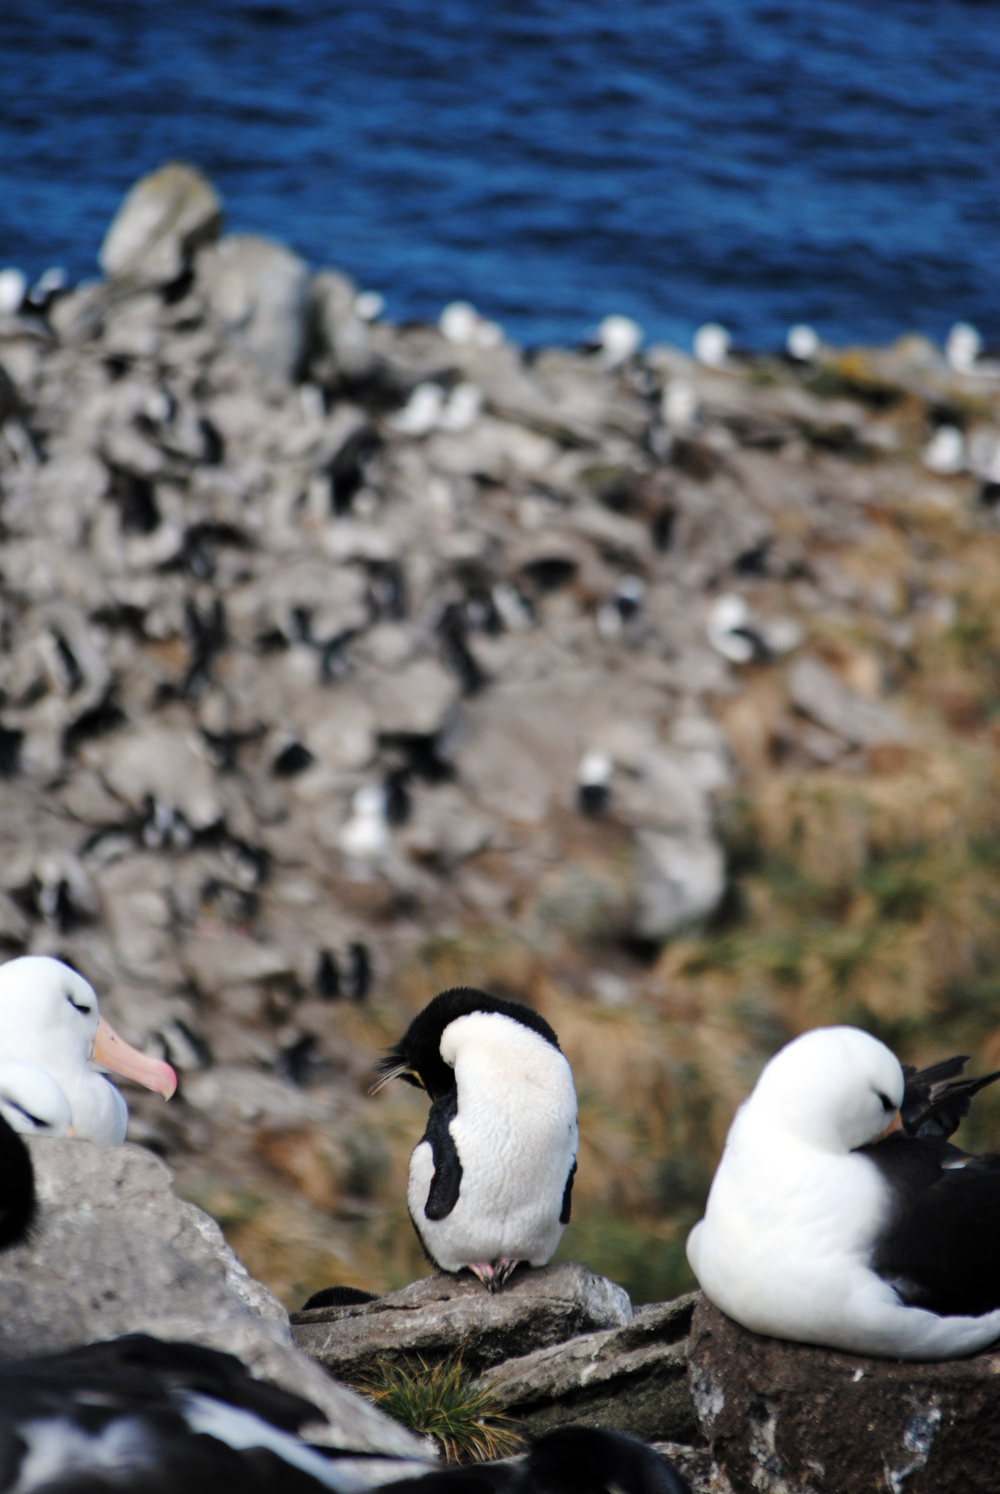 Falkland Islands, Saunders Island, black browed albatross, rockhopper penguin, penguins - Maggie a la Mode